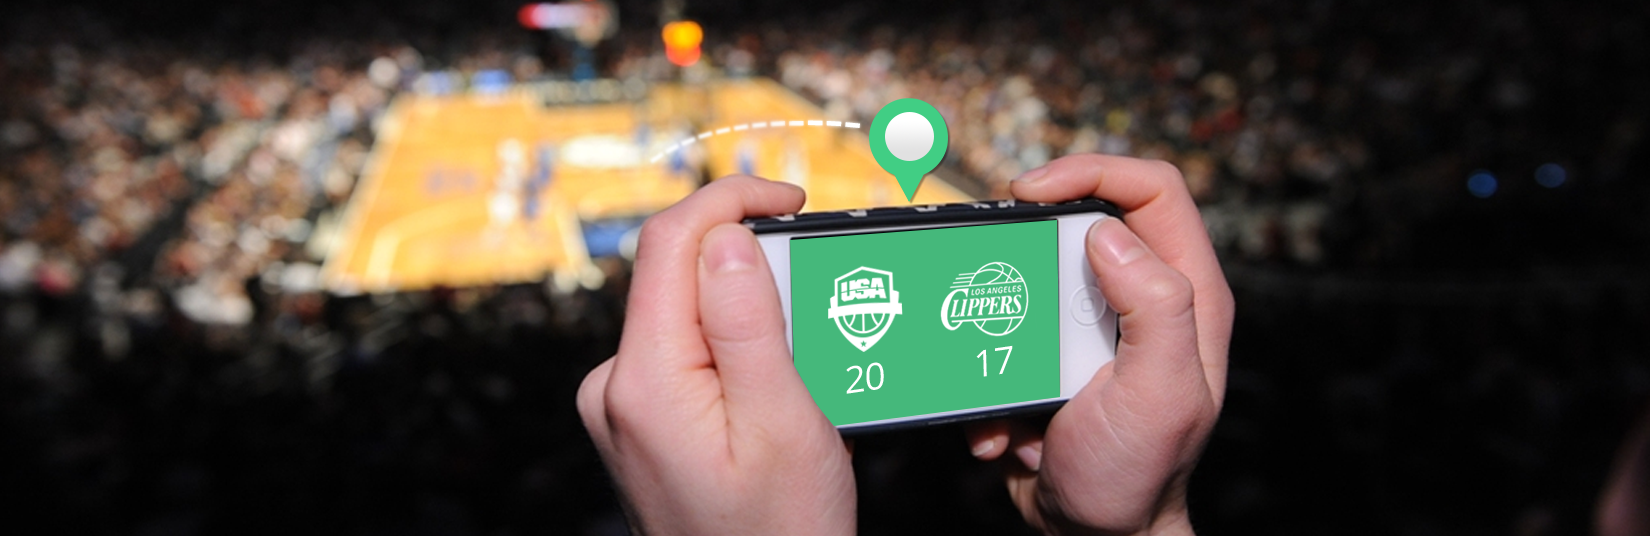 Beacons enables virtual athletic programs